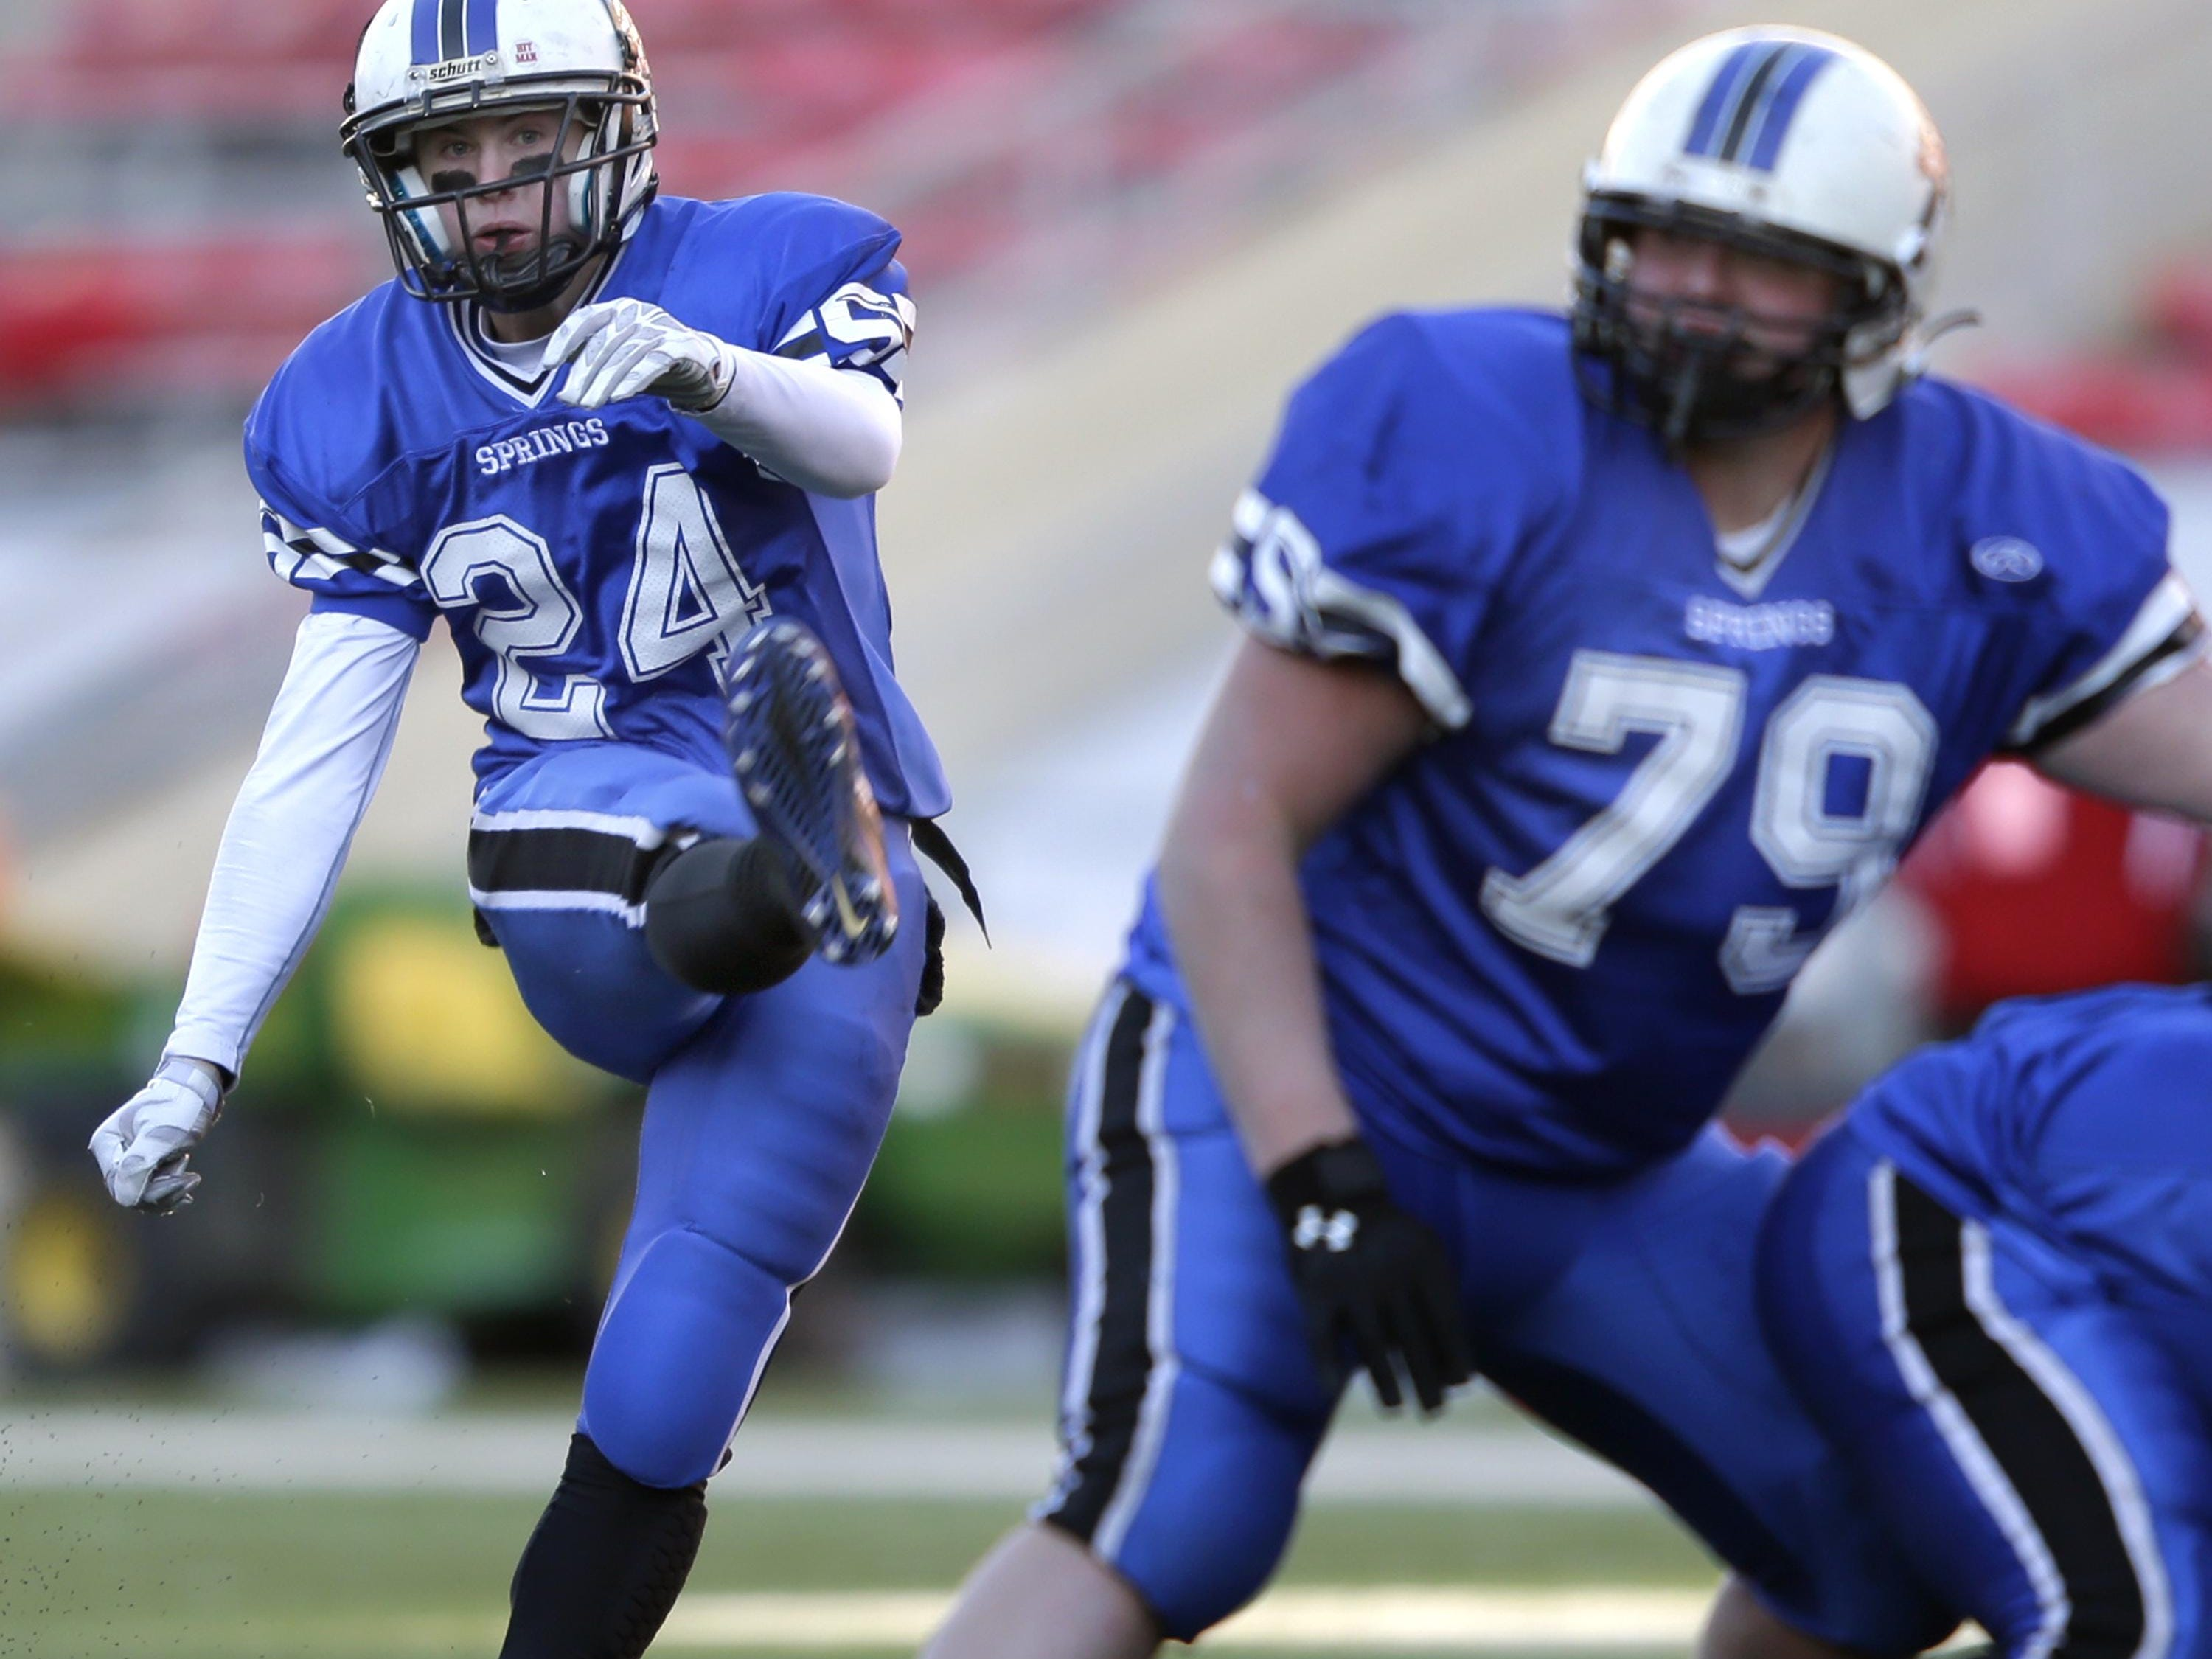 St. Mary's Springs' Zach Hintze kicks a field goal during the WIAA Division 6 state title game last November in Madison.